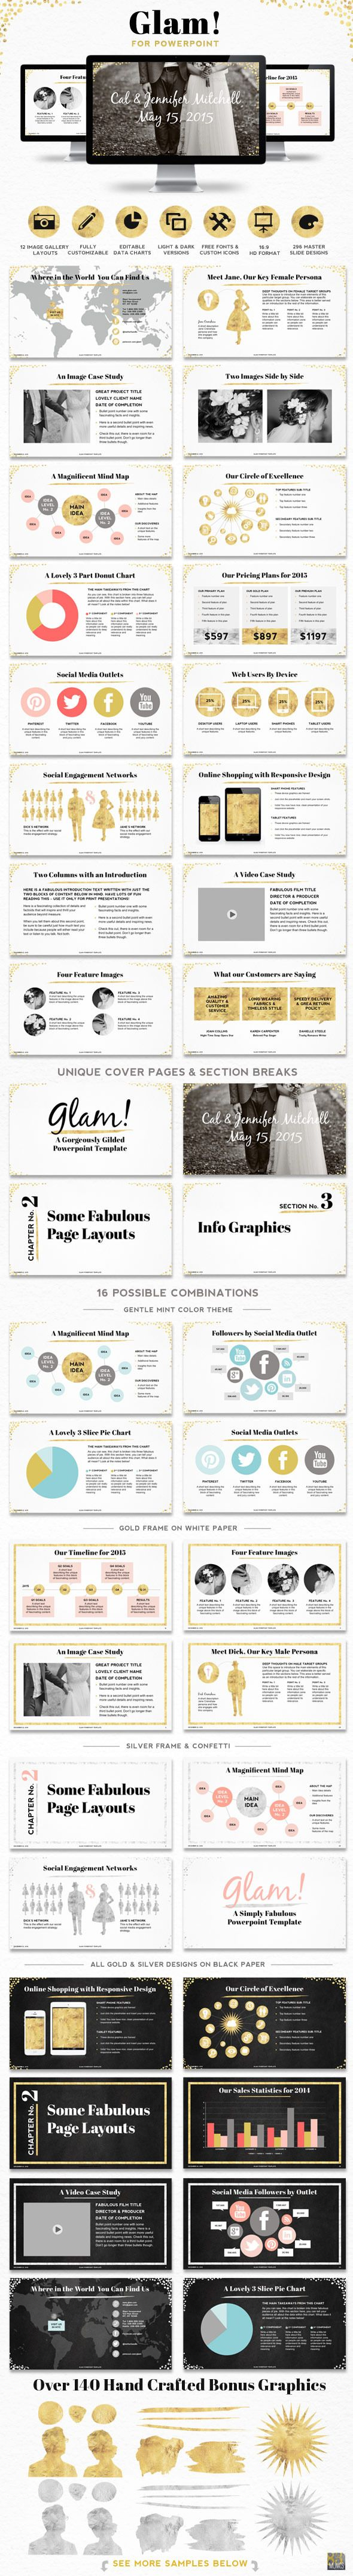 Glam! Powerpoint Presentation Template - Perfect for eBooks, photography and luxury presentations